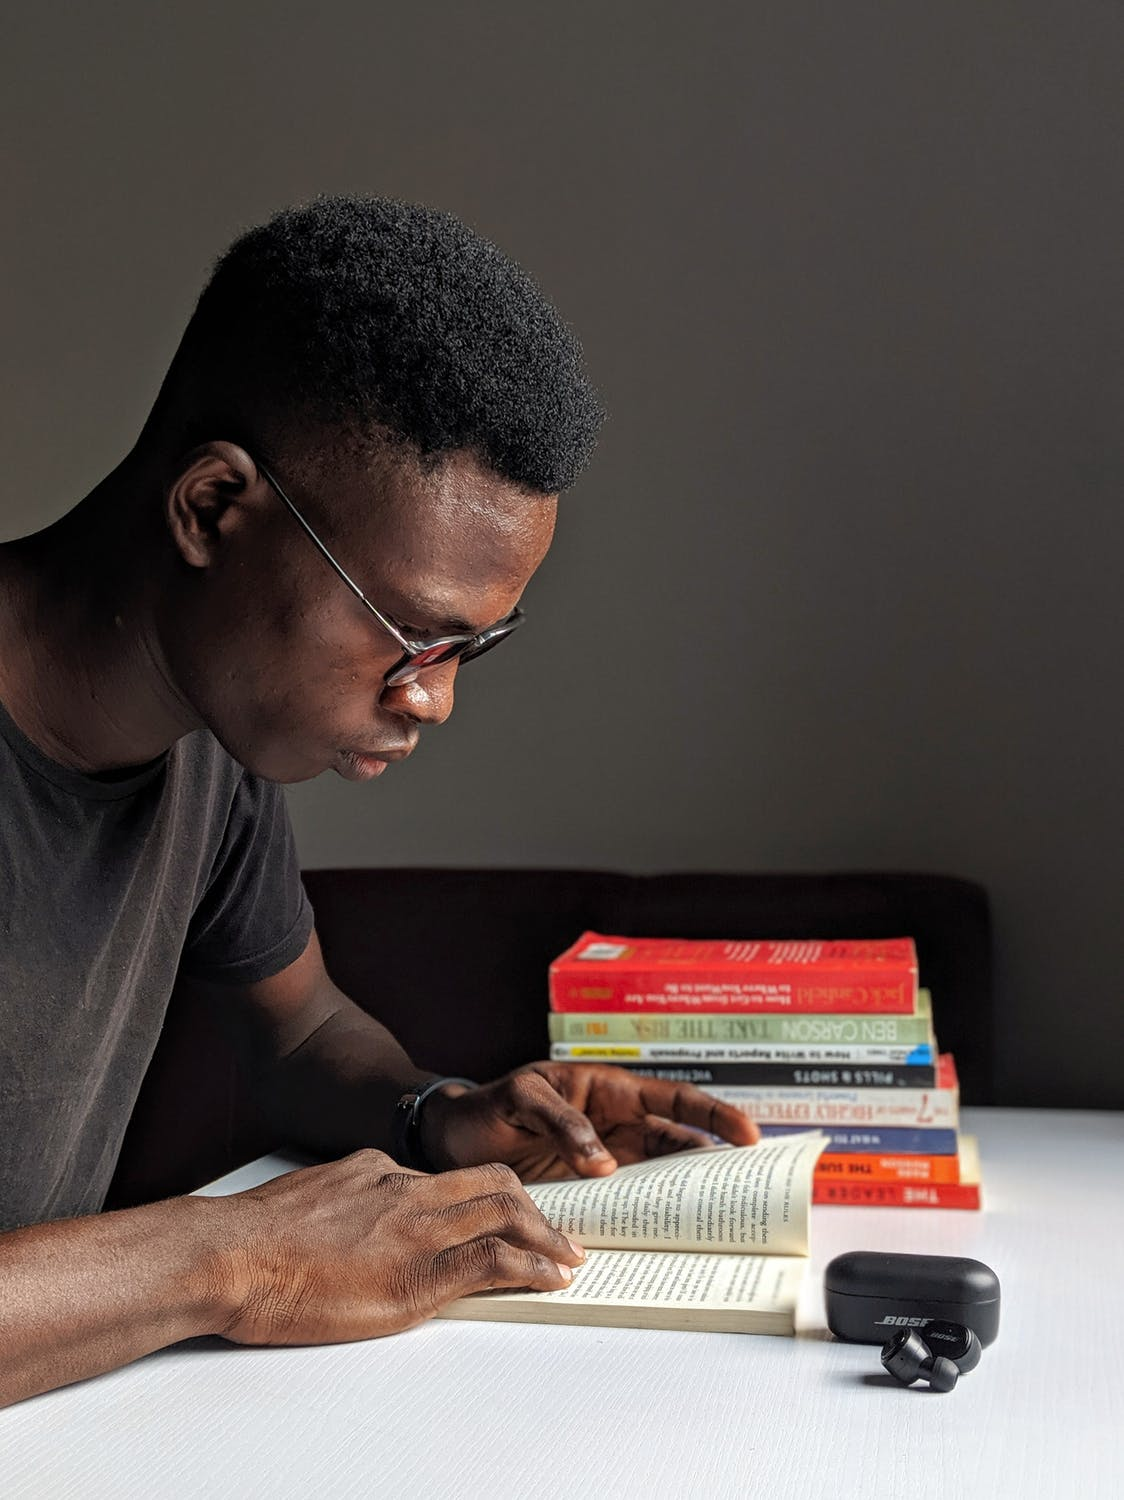 Male in his twenties reading a book at his desk